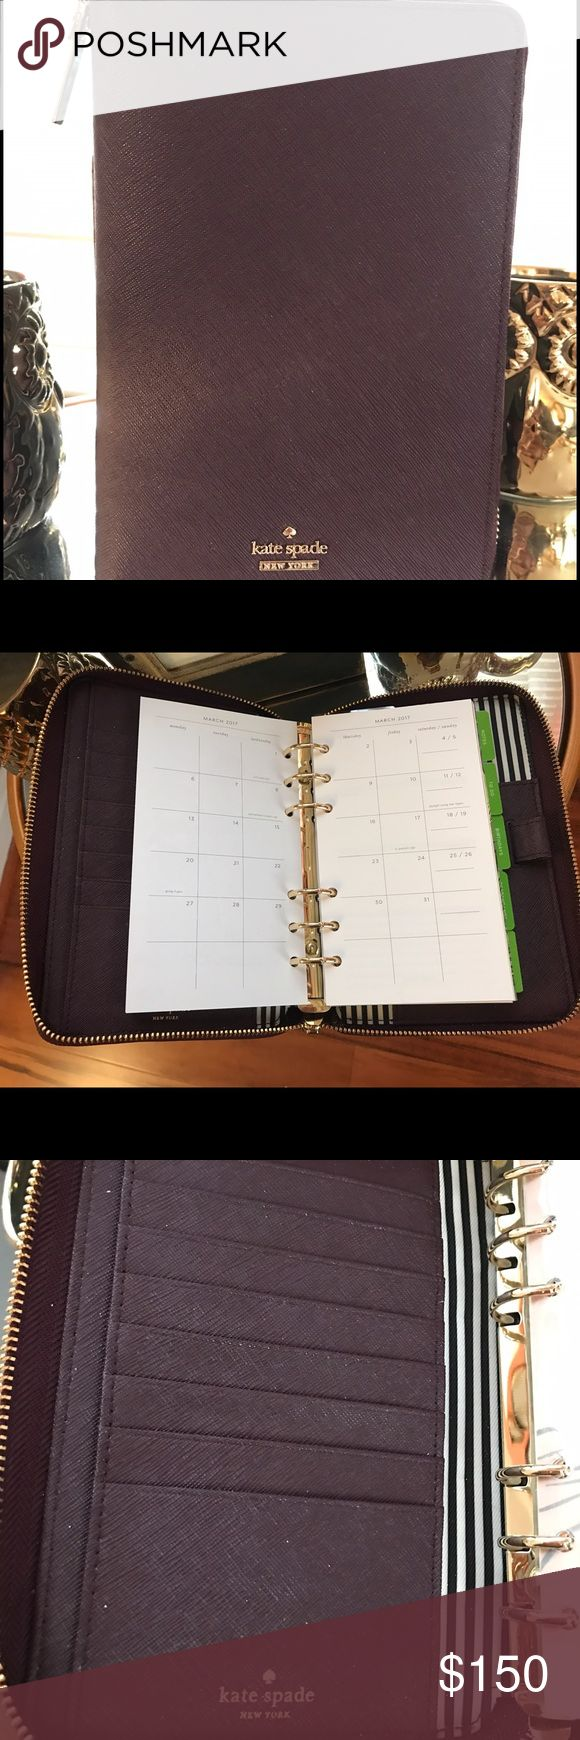 Kate Spade Cameron Street Agenda Almost brand new mahogany Cameron Street Planner. Only used for a month and will include all remaining 2016 and 2017 inserts.  US buyers only (no international shipping).  Cameron Street agendas are new as of 2016. kate spade Other